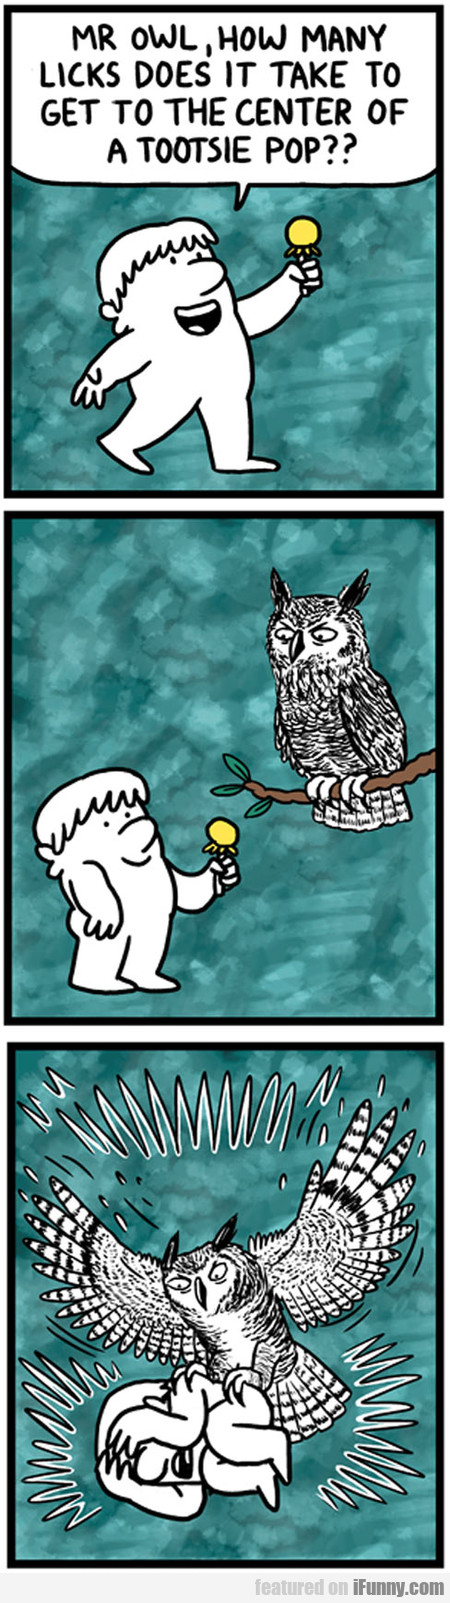 Mr Owl, How Many Licks Does It Take To Get To...